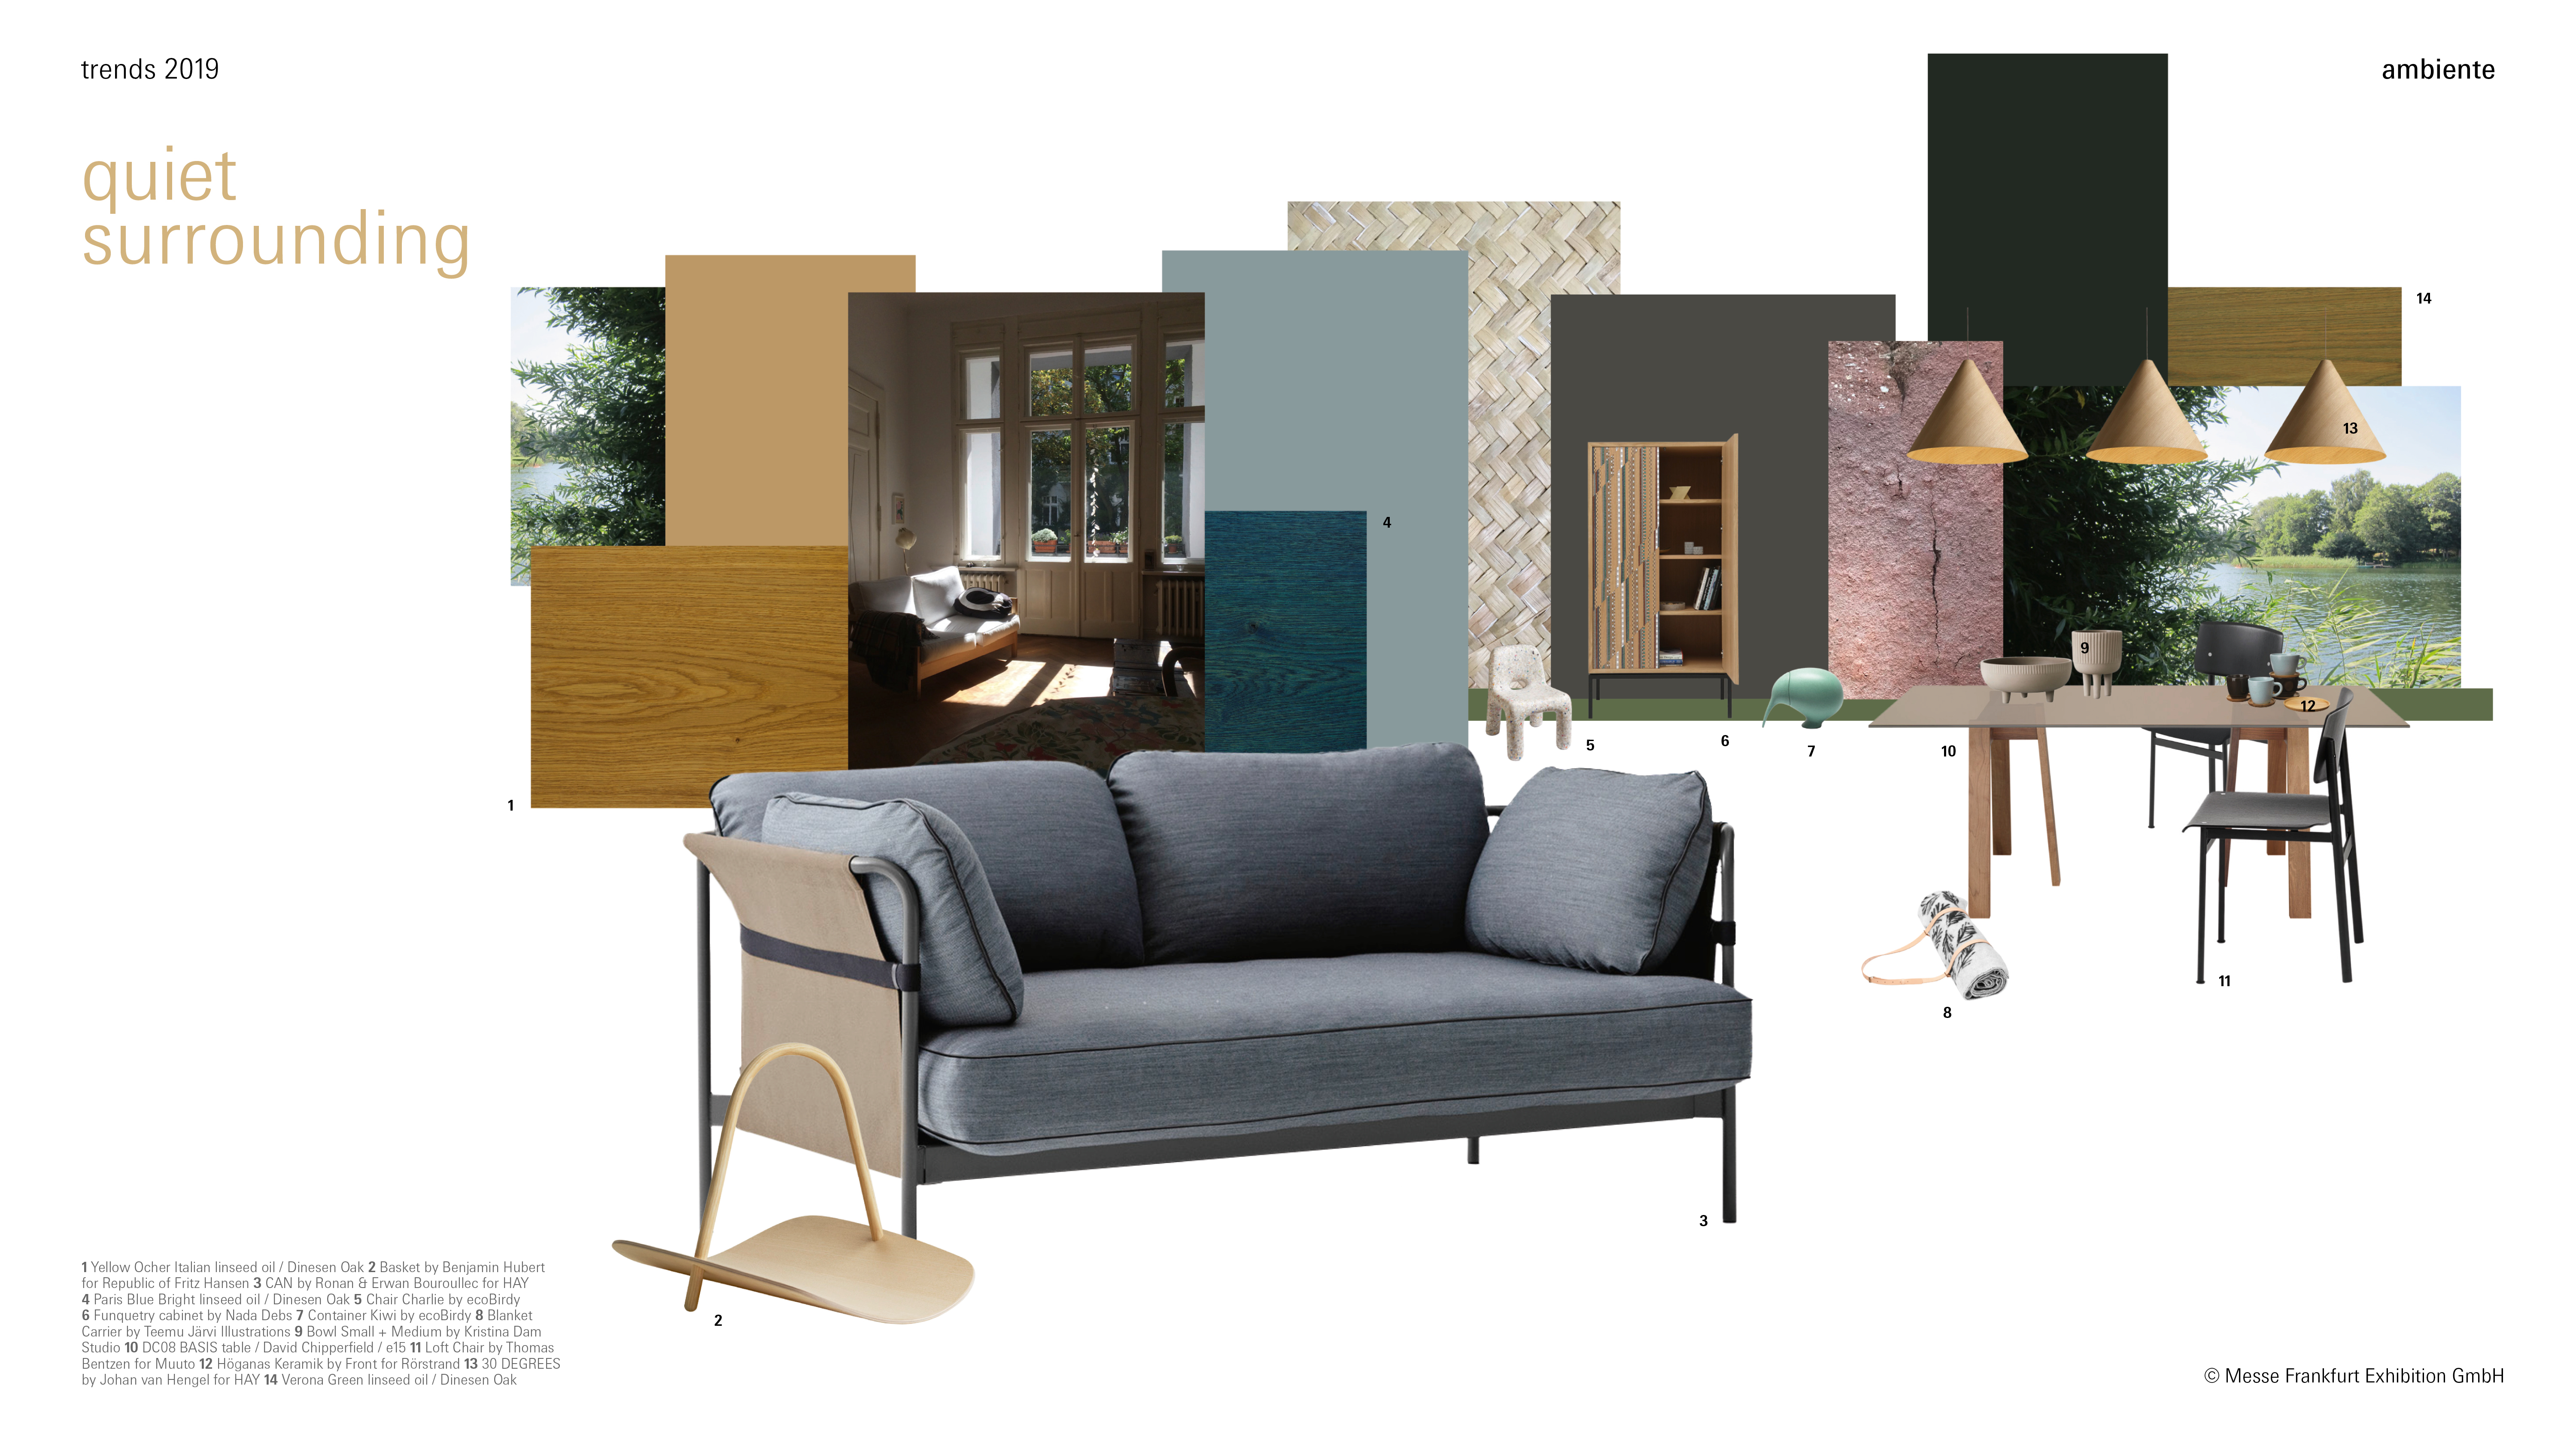 Ambiente 2019 Trend: Quiet surrounding